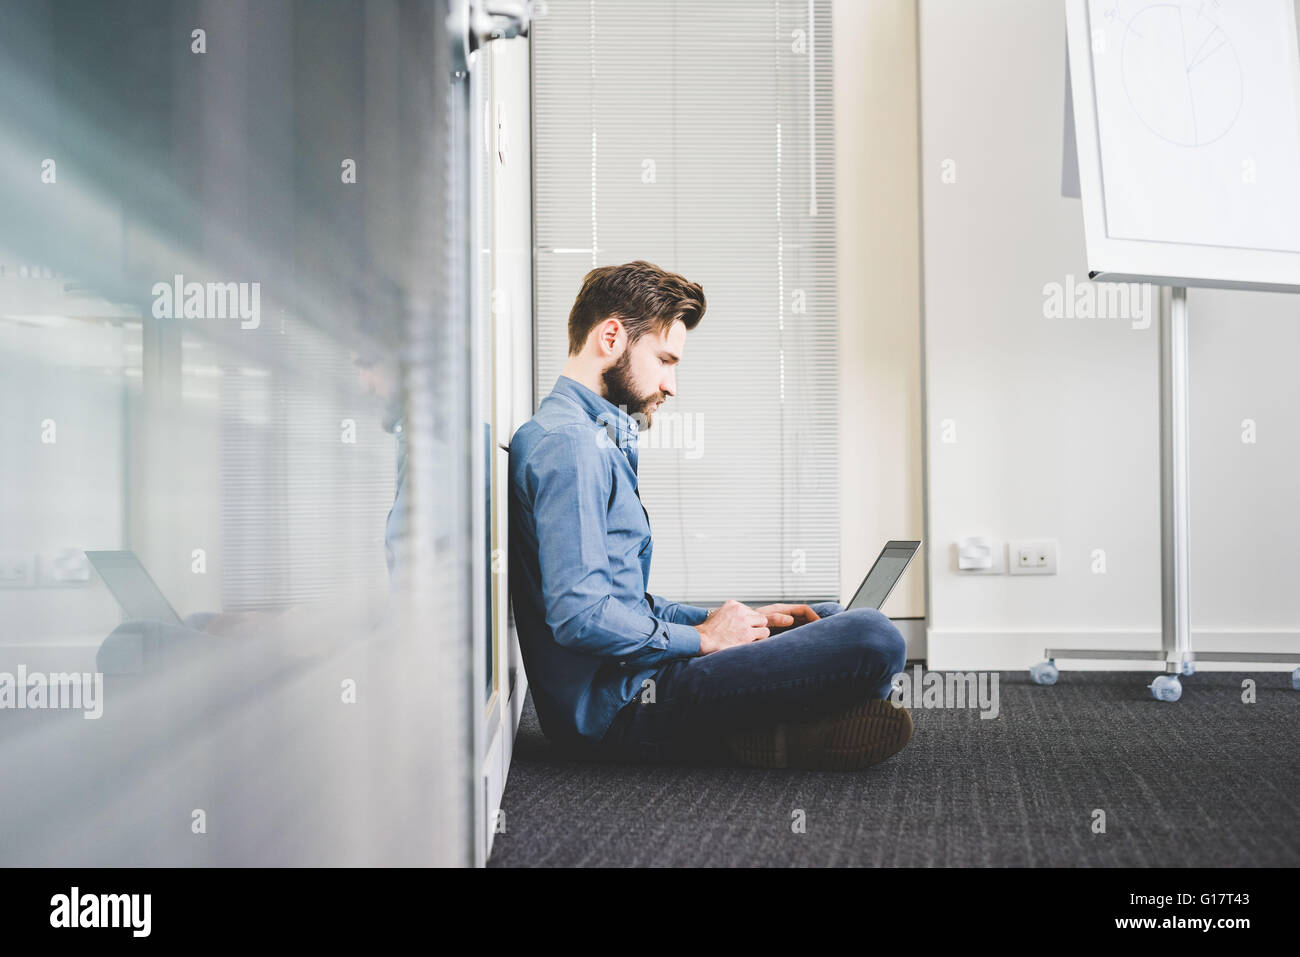 Young male sitting on office floor using laptop - Stock Image